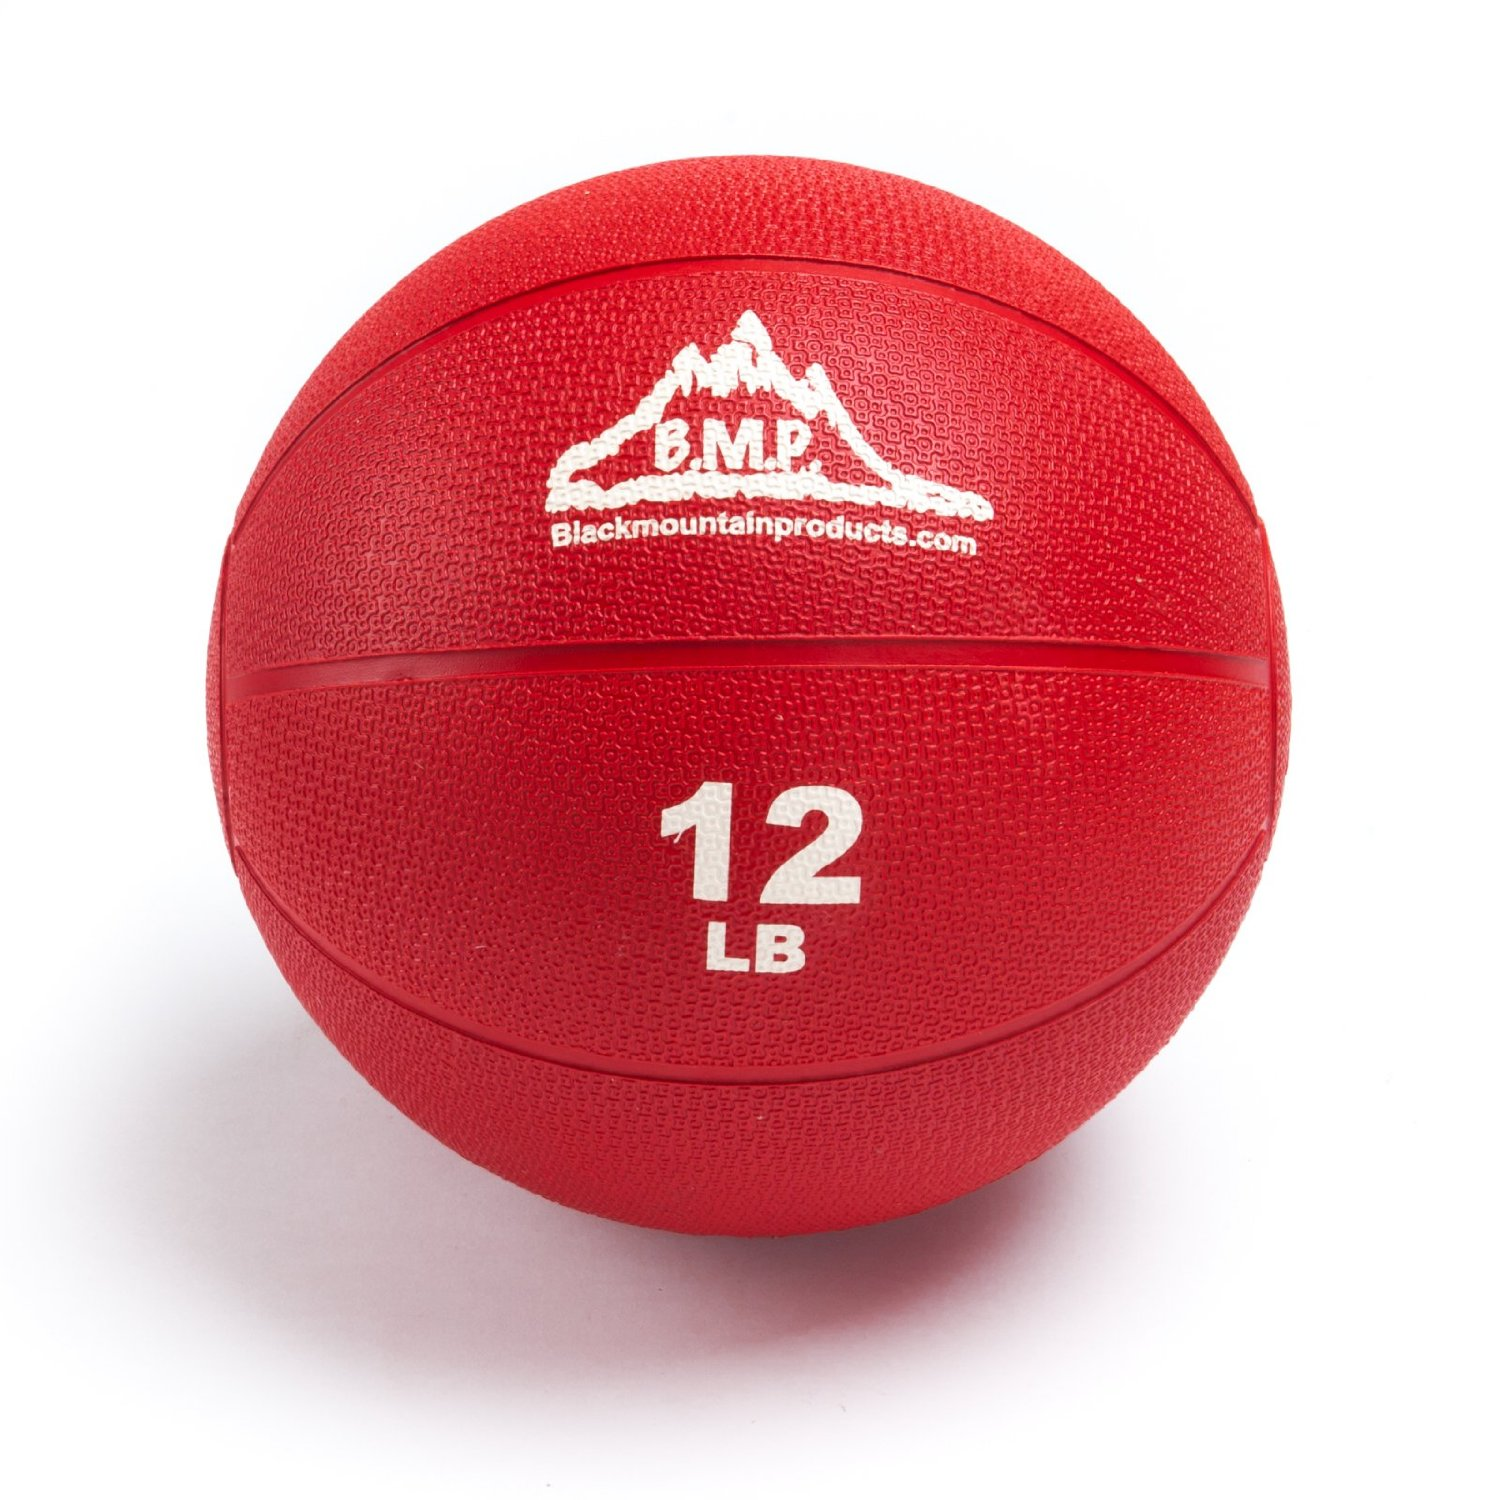 Professional Medicine Ball - Black Mountain Products